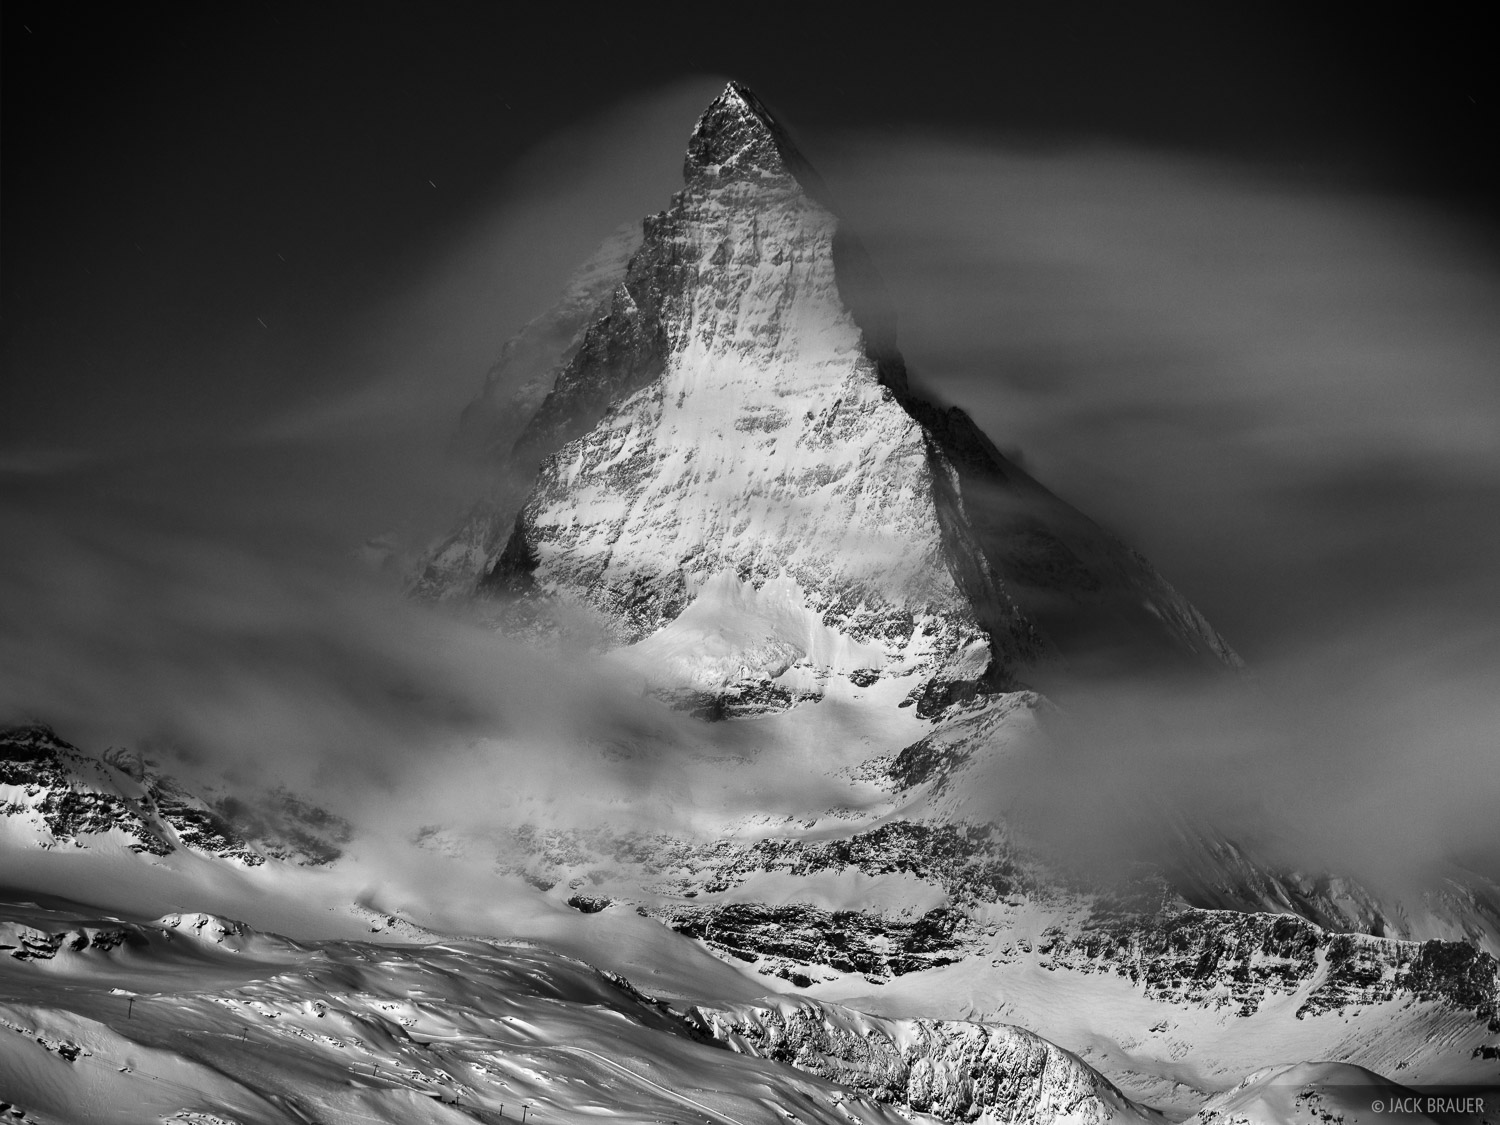 Matterhorn, winter, moonlight, Zermatt, Switzerland, Alps, photo